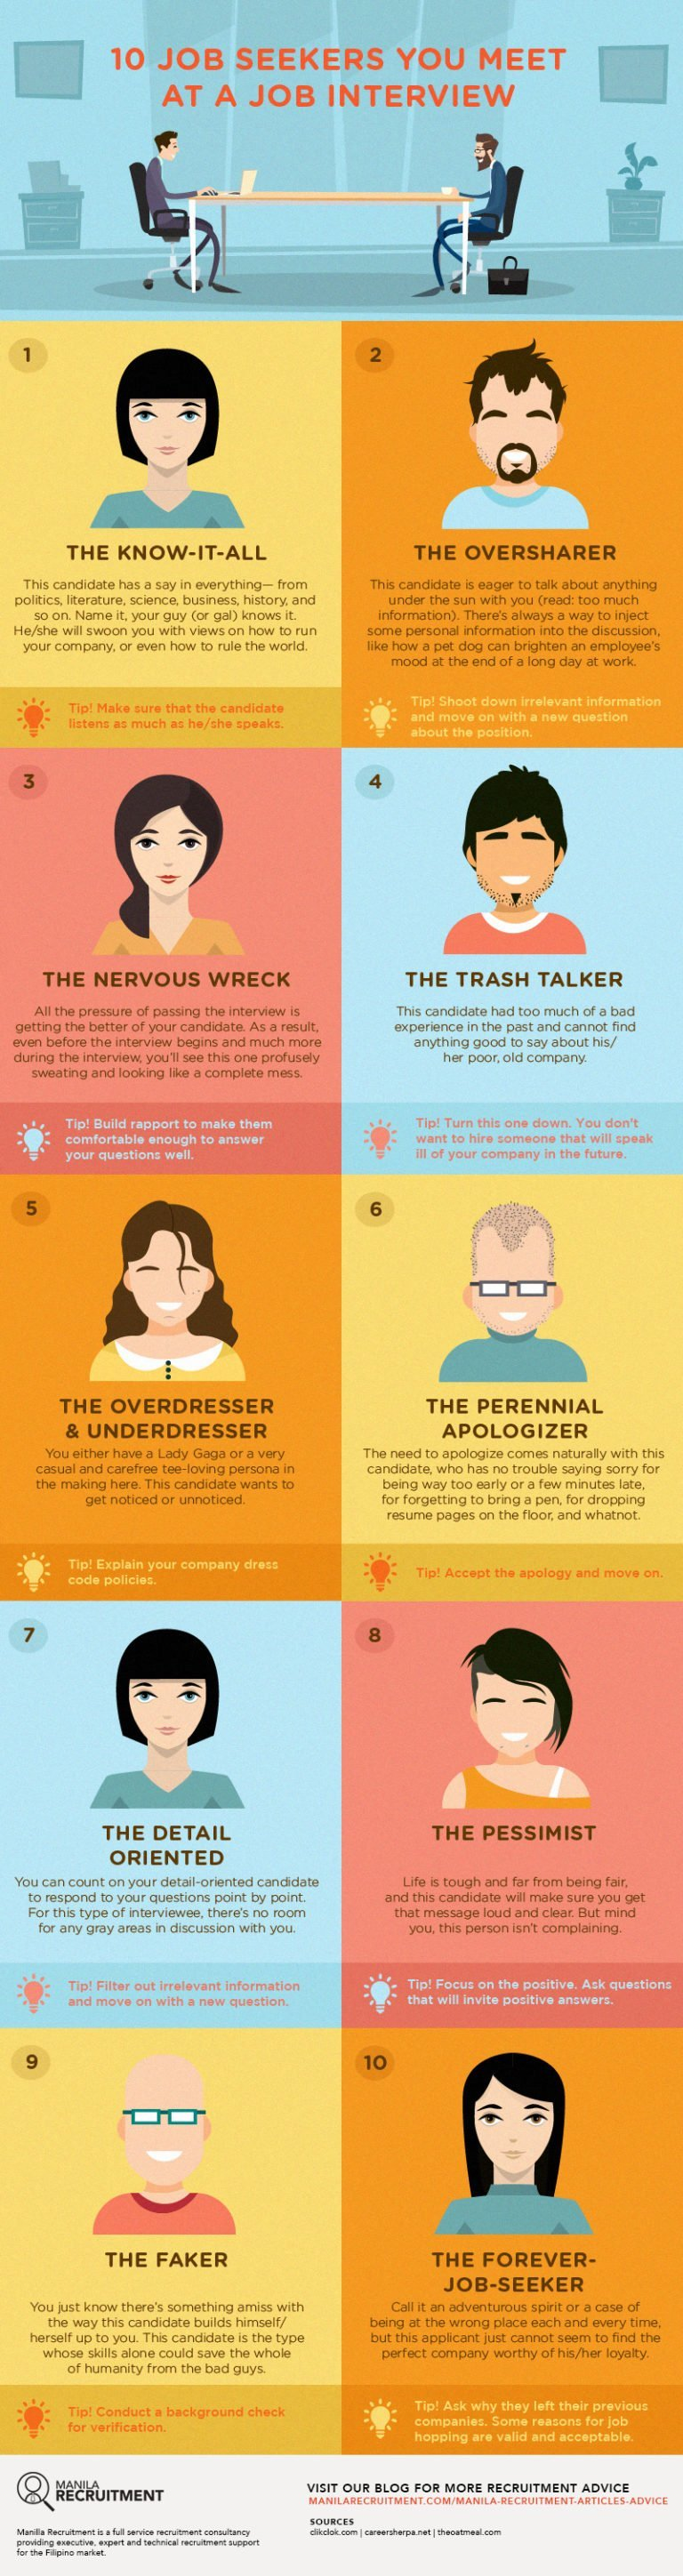 job seekers you meet at a job interview infographic